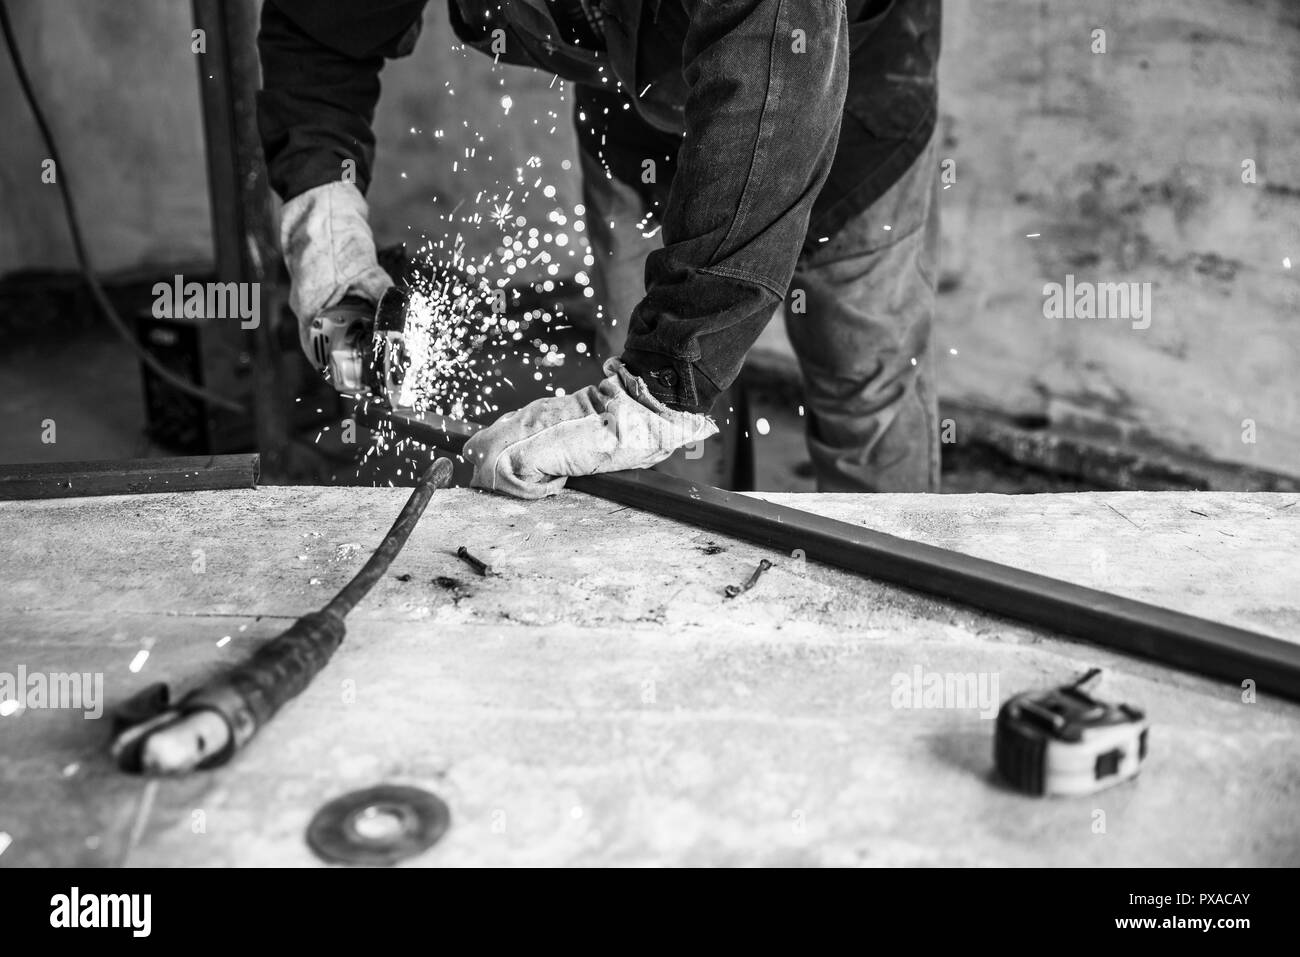 Worker cutting metal profile with electric angle grinder. People at work, profession. Monochrome effect - Stock Image